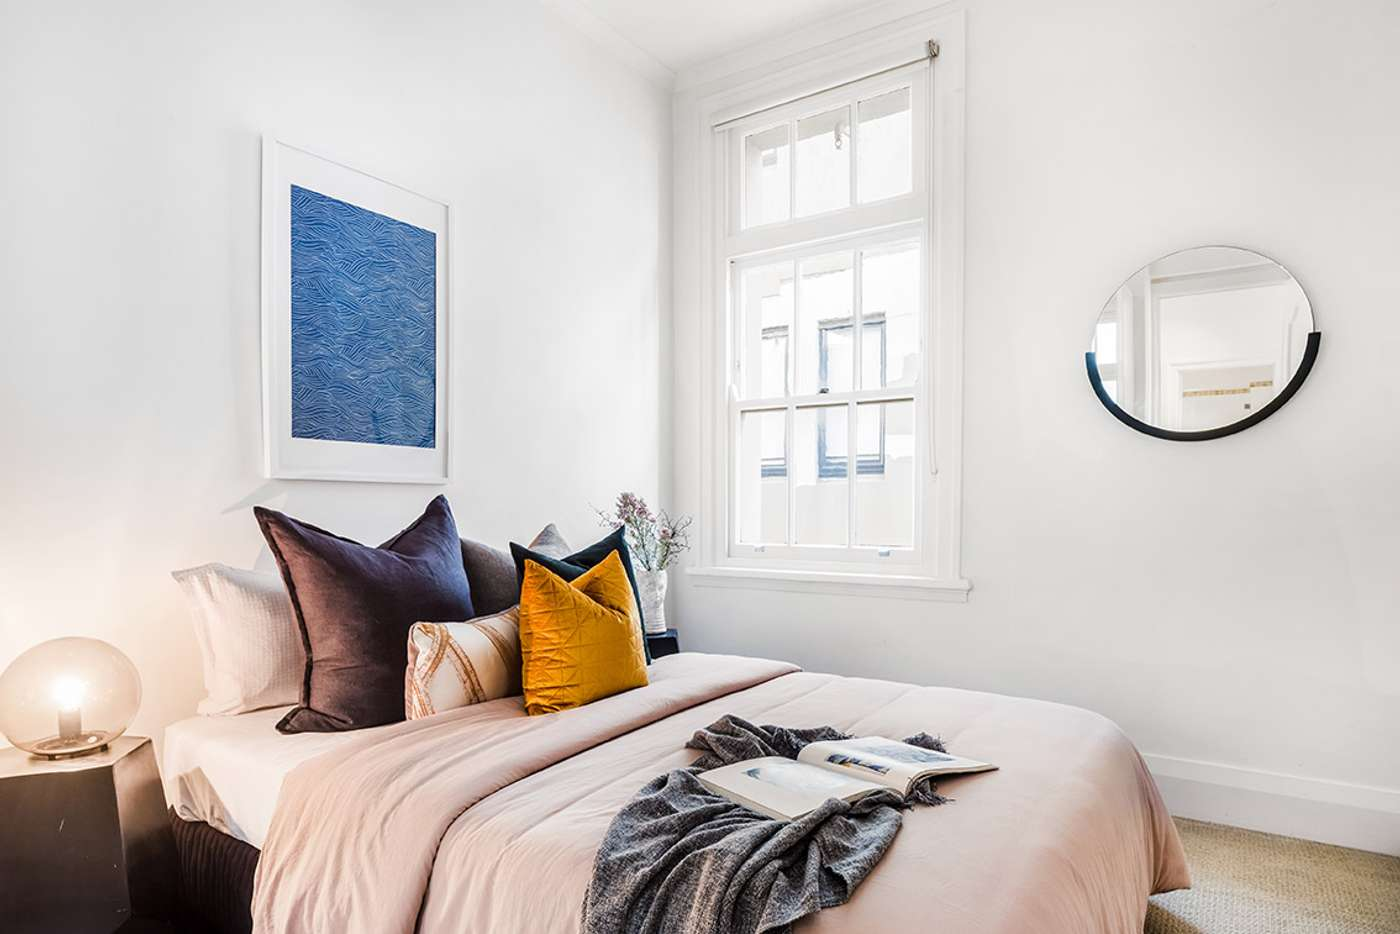 Sixth view of Homely apartment listing, 43/16 Kings Cross Road, Potts Point NSW 2011